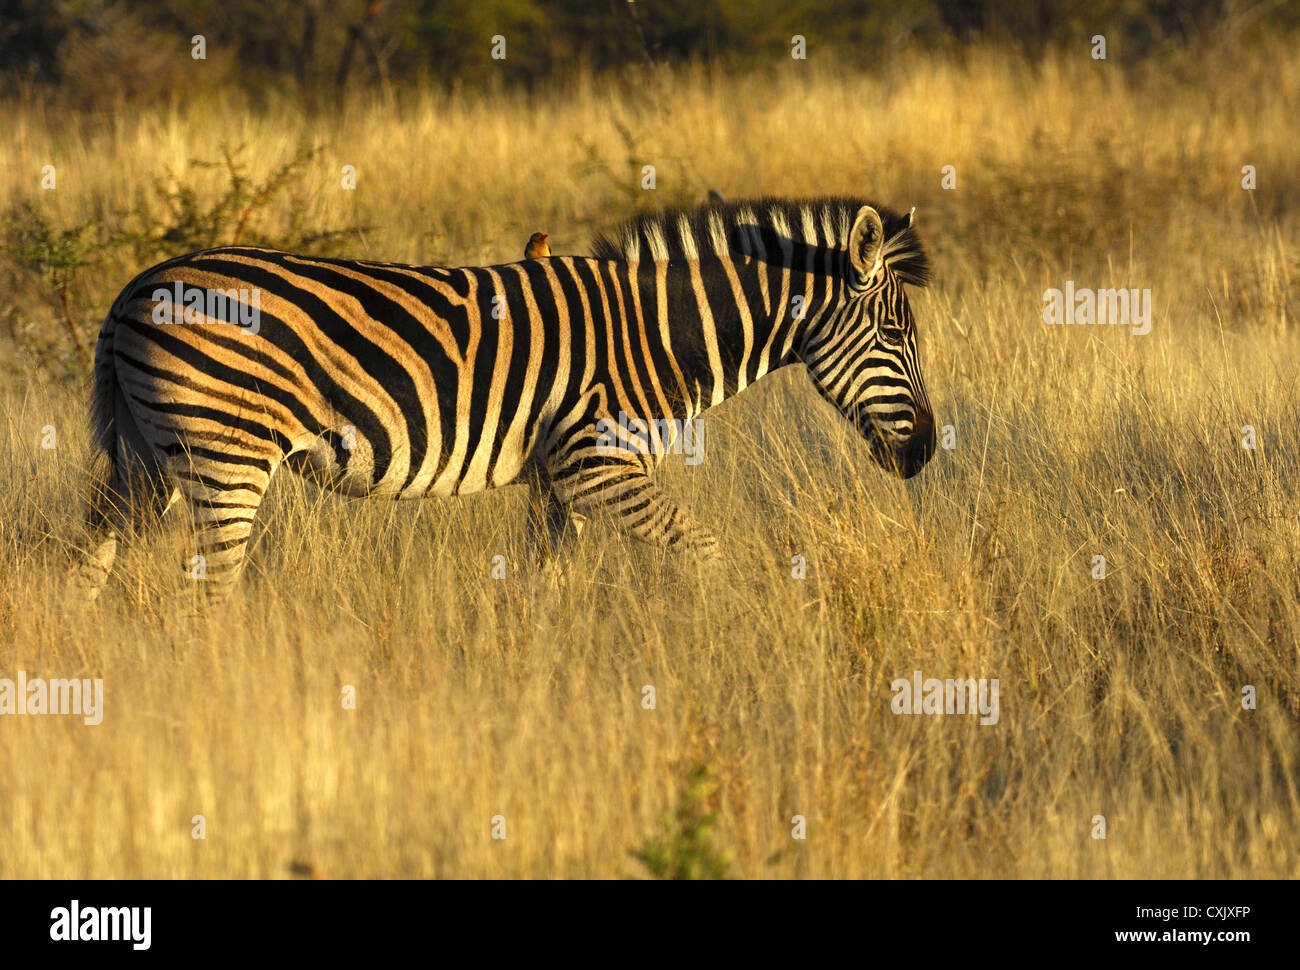 Plains Zebra in the savannah, South Africa - Stock Image